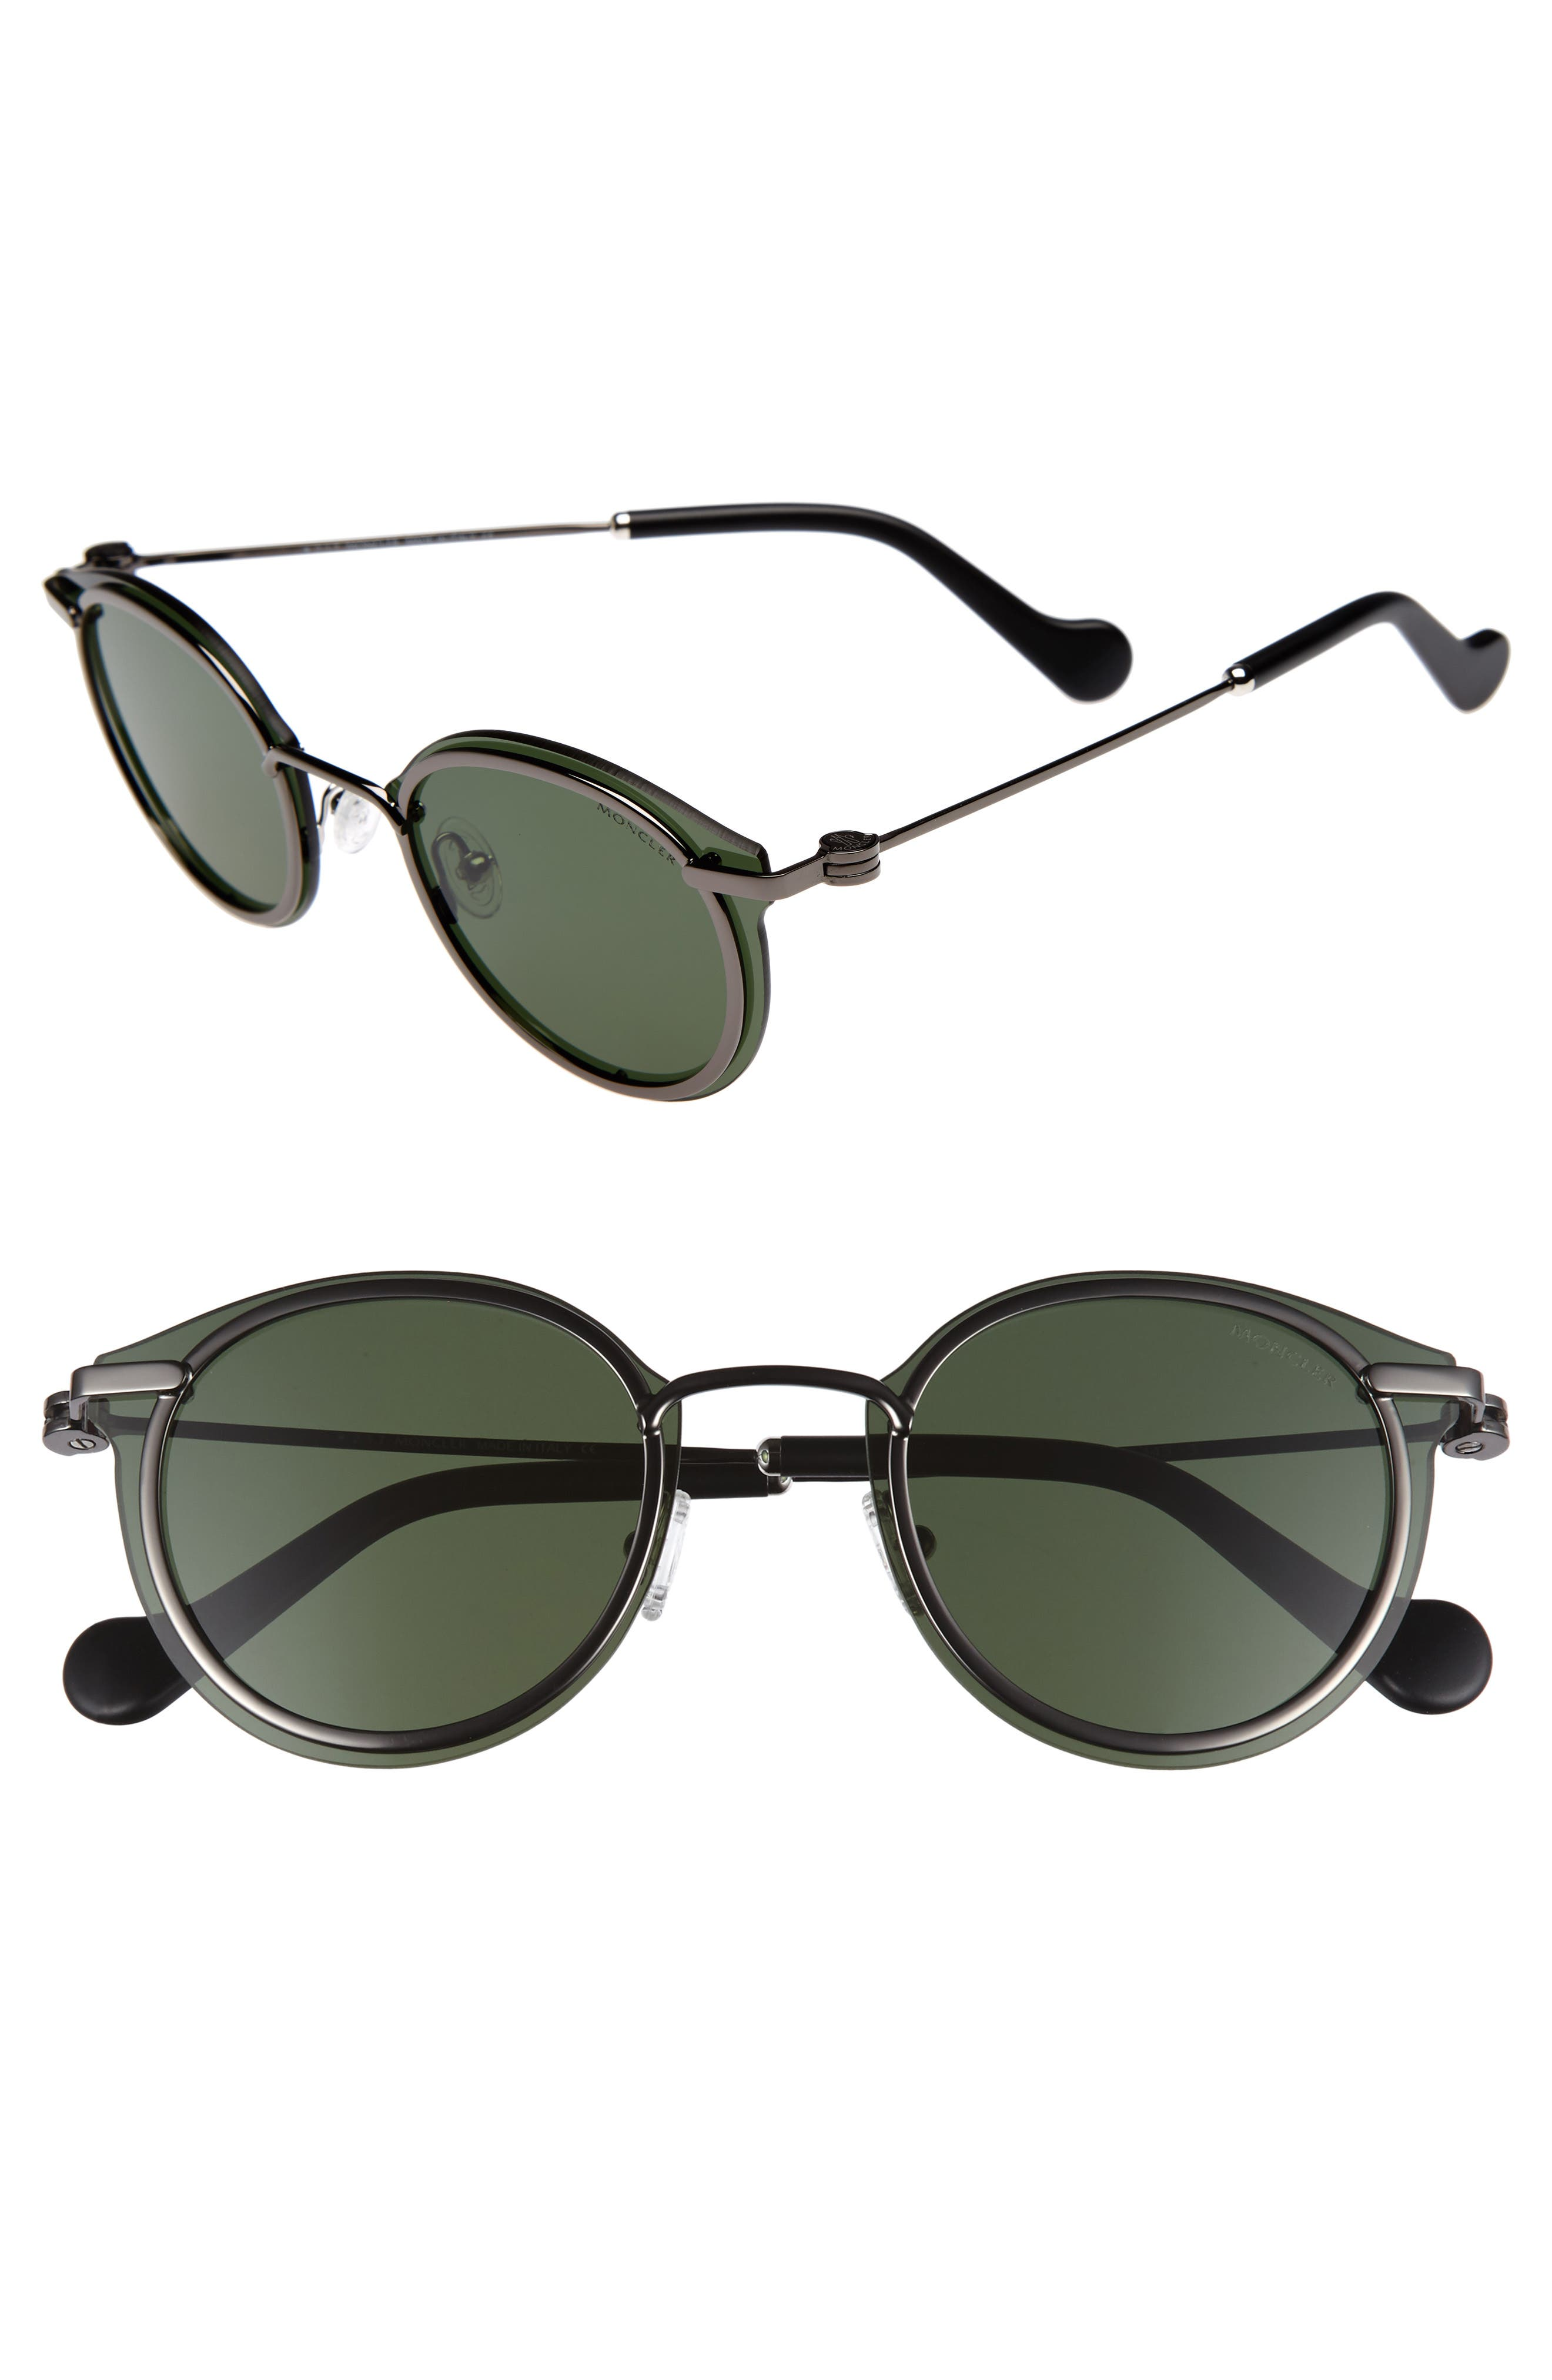 Moncler 58mm Mirrored Round Sunglasses